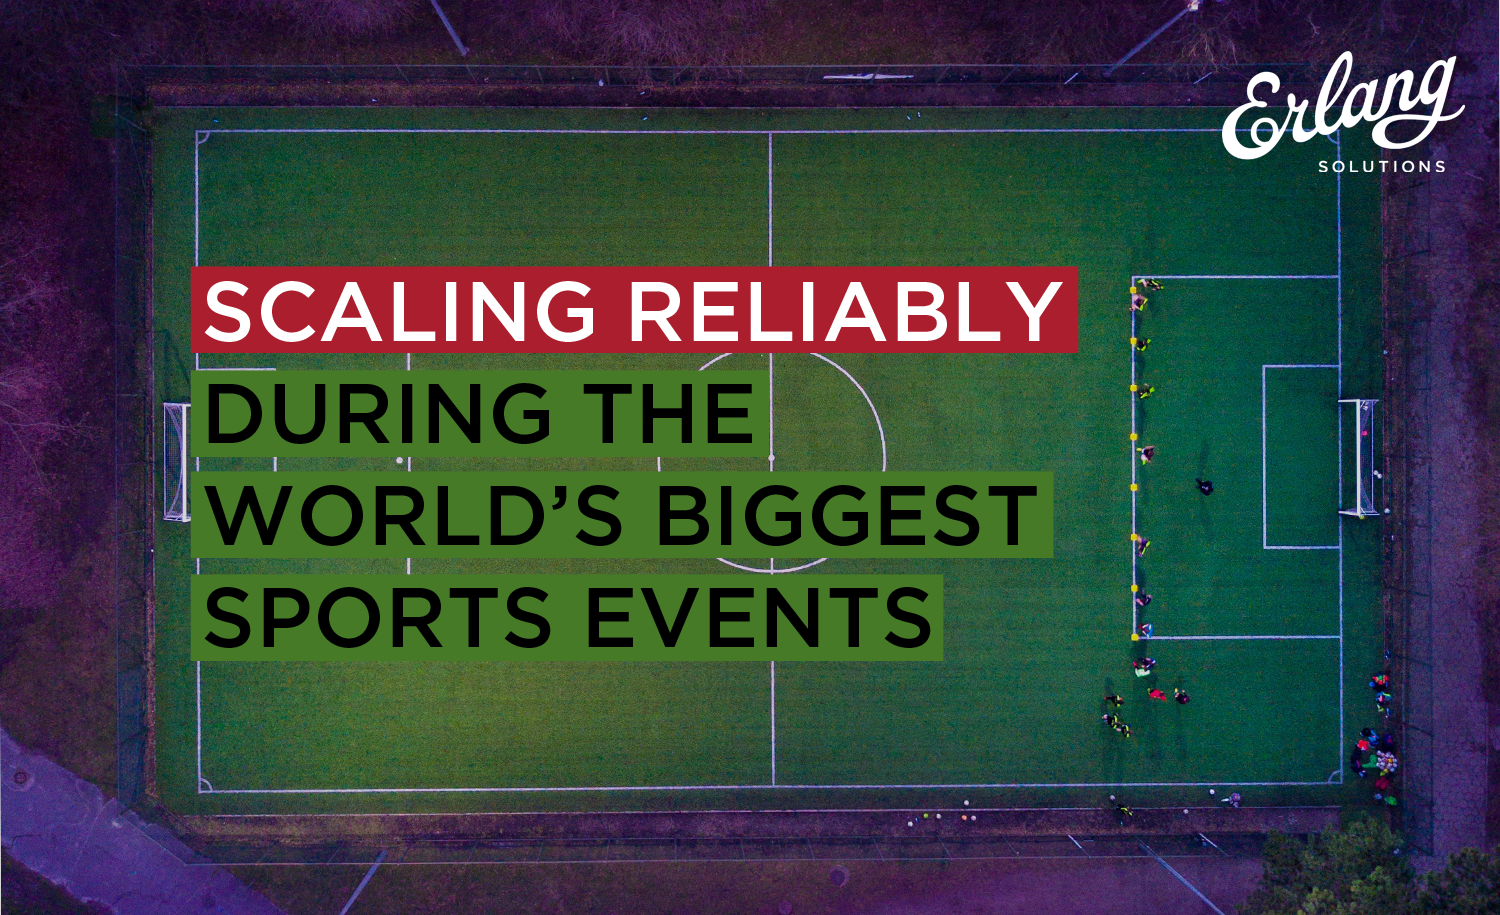 /scaling-reliably-during-the-worlds-biggest-sports-events-1e0df14bb0af feature image